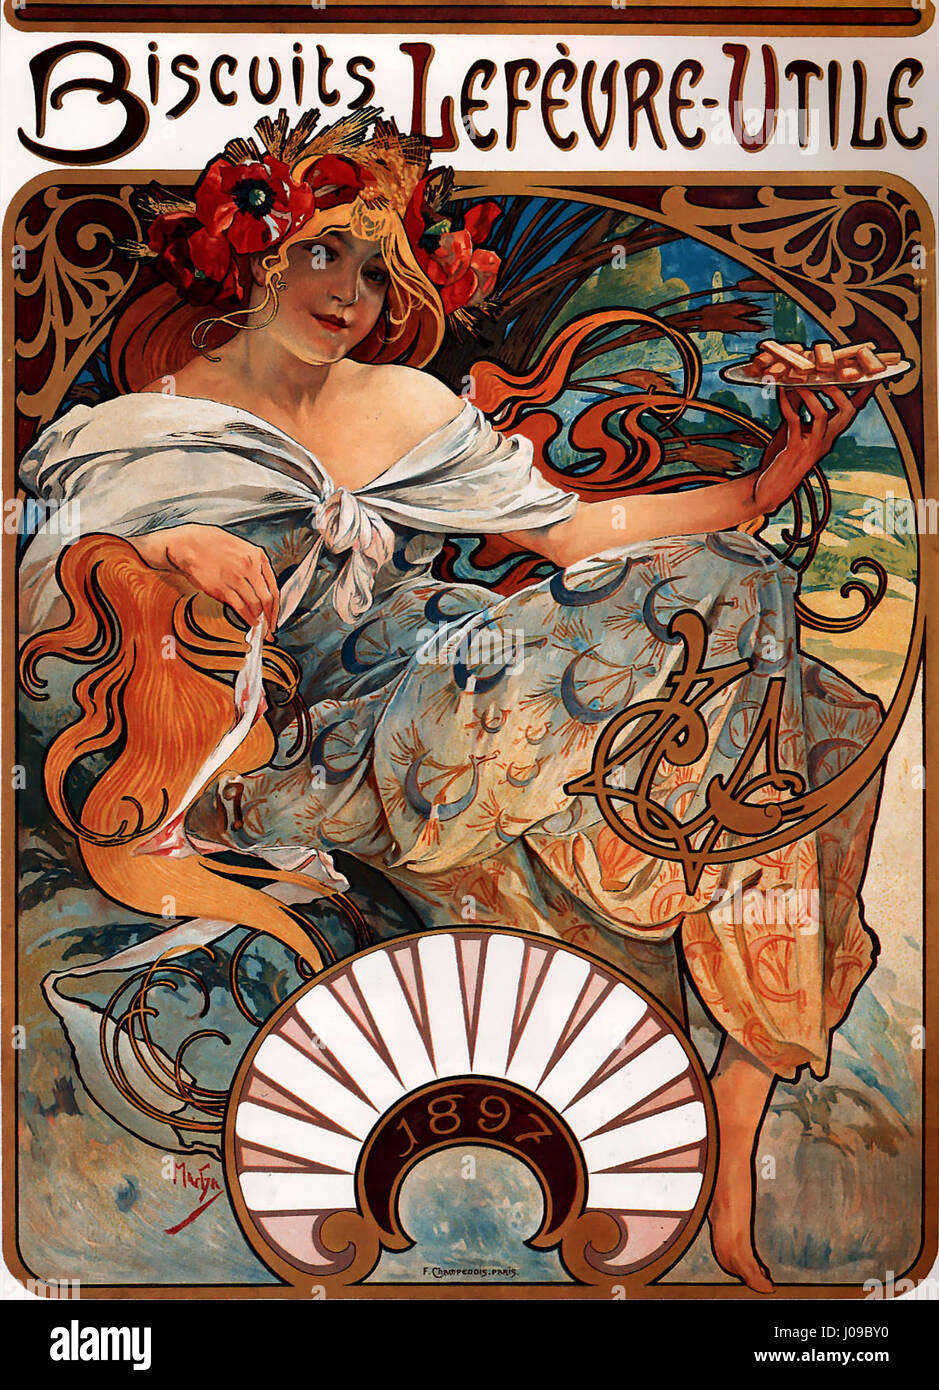 Alfons Mucha - 1896 - Biscuits Lefèvre-Utile - Stock Image